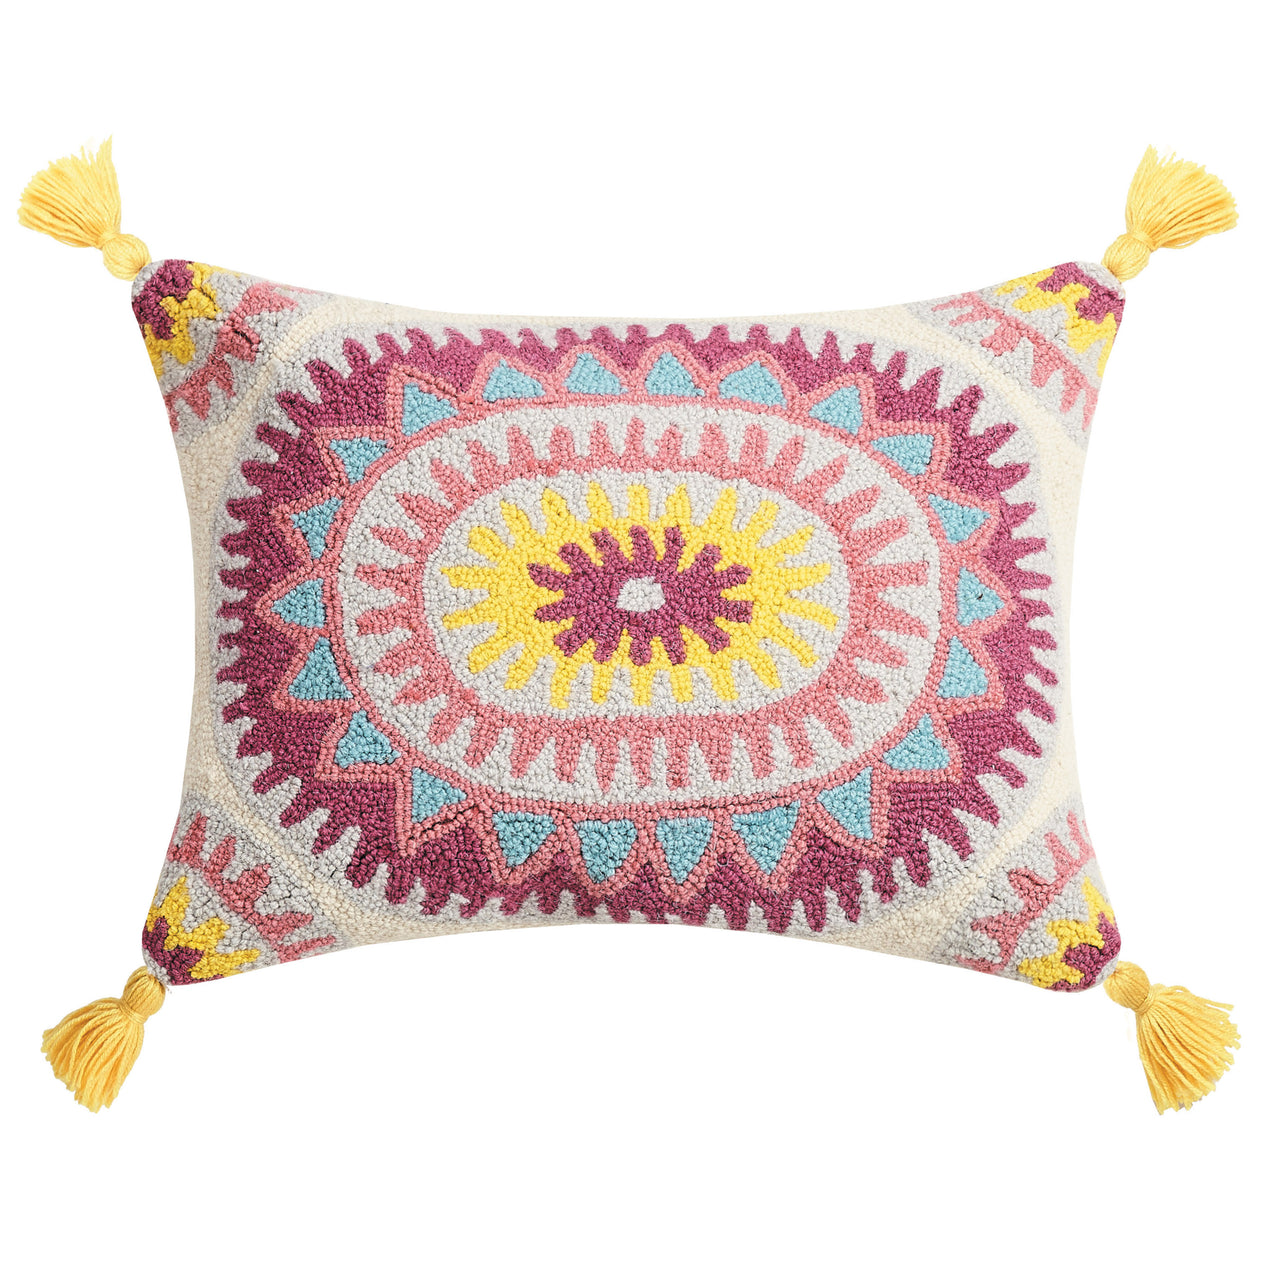 Sunflower with Tassels Throw Pillow